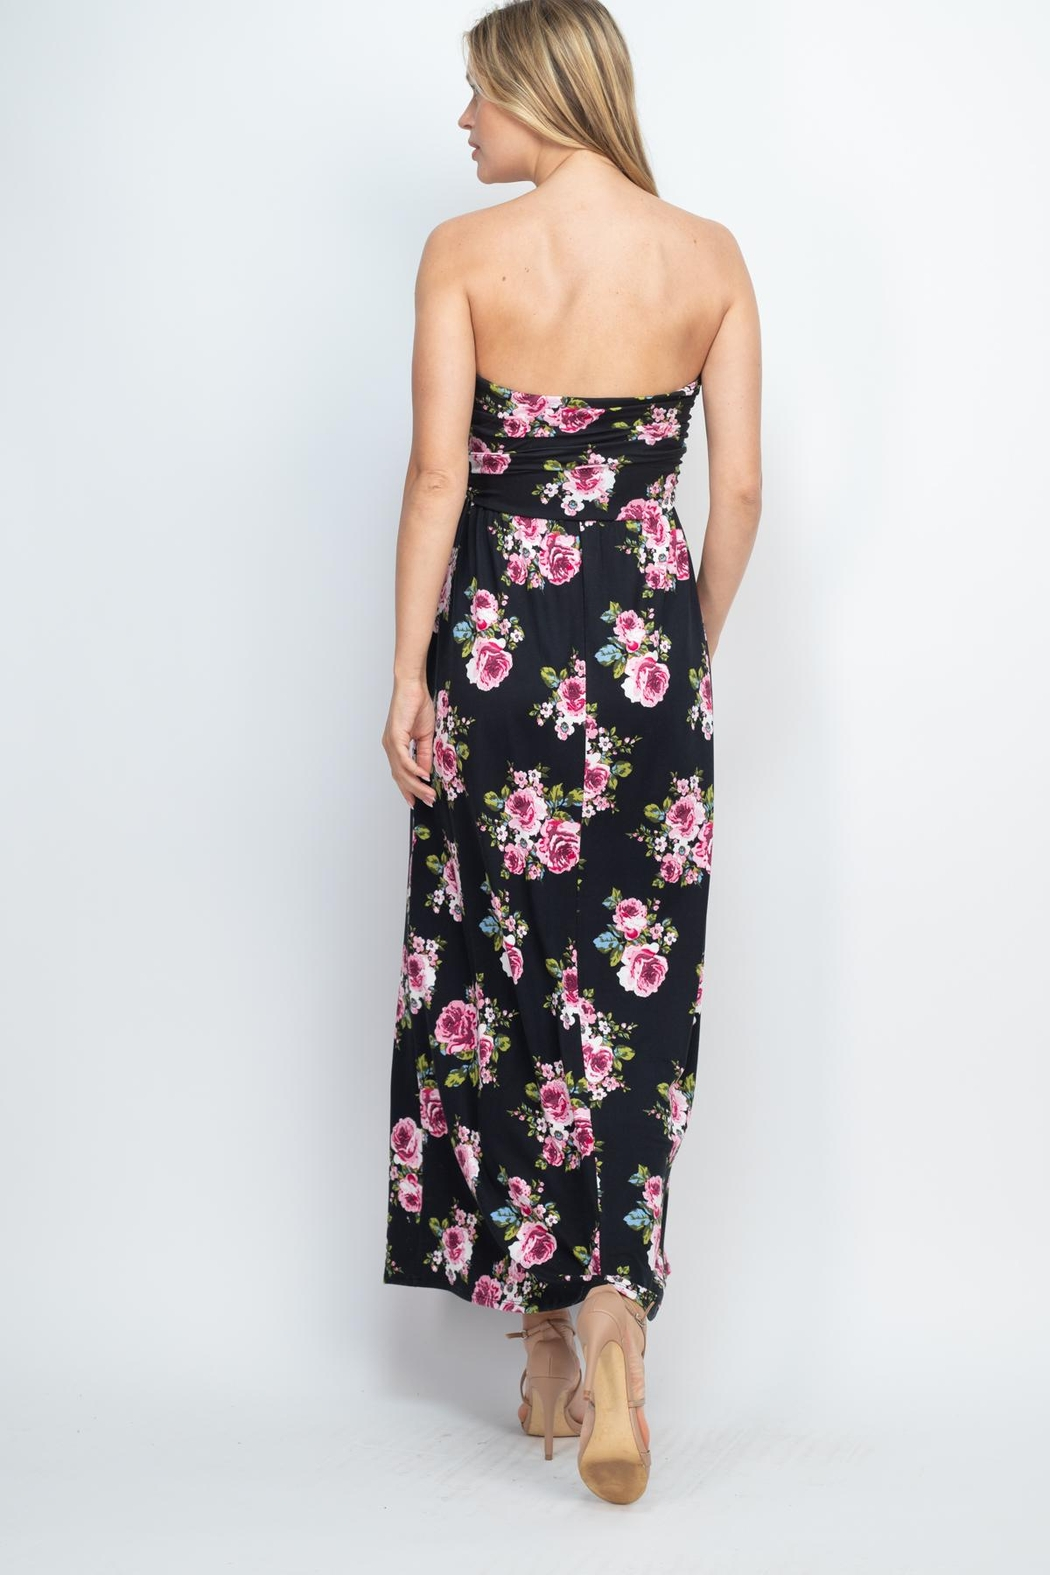 Riah Fashion Tube-Top-Floral-Pocket-Maxi-Dress-With-Inside-Lining - Front Full Image